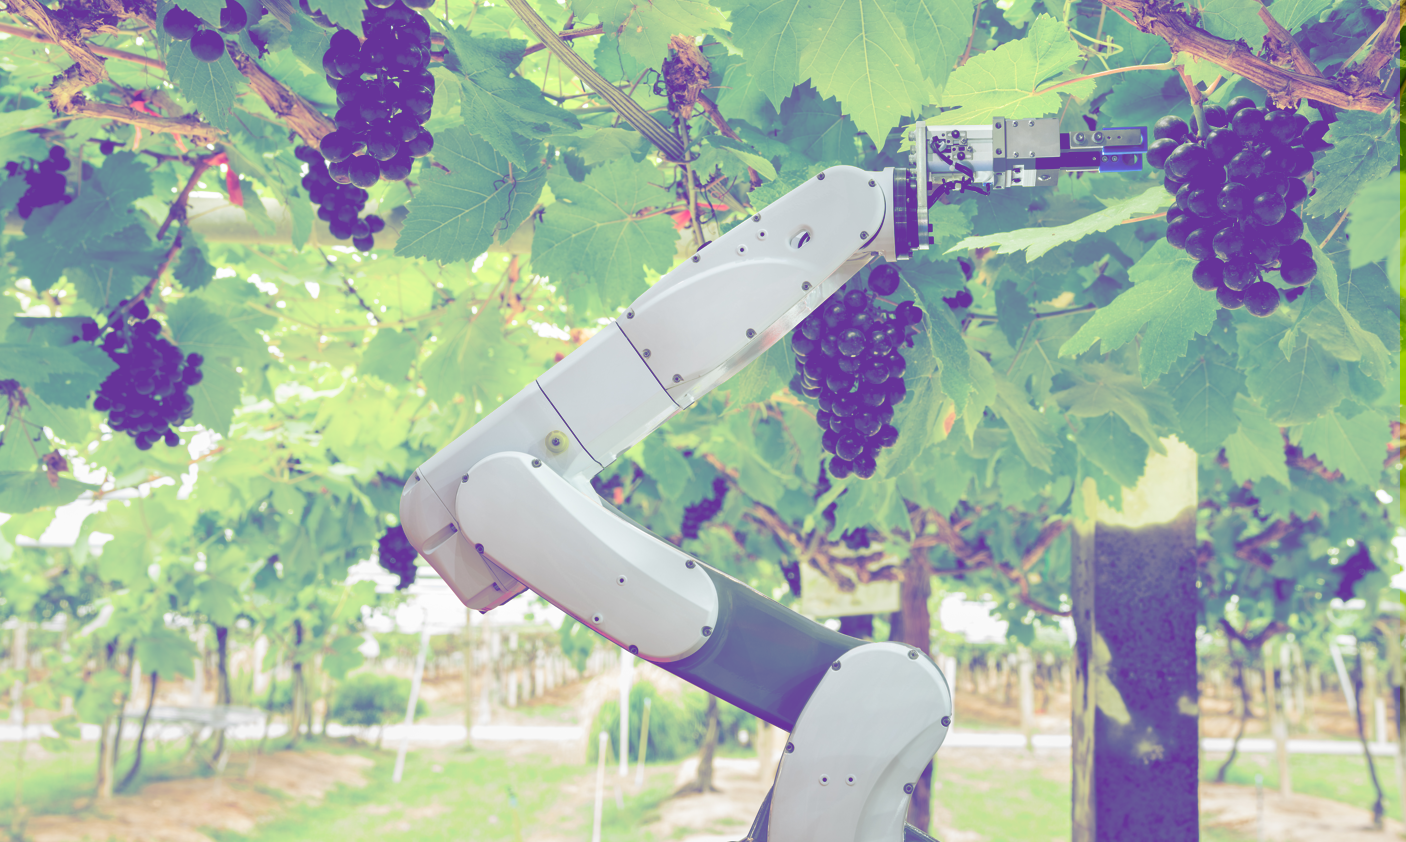 2020 Future Wine Expo - World's Largest AI and Tech Event For Wine